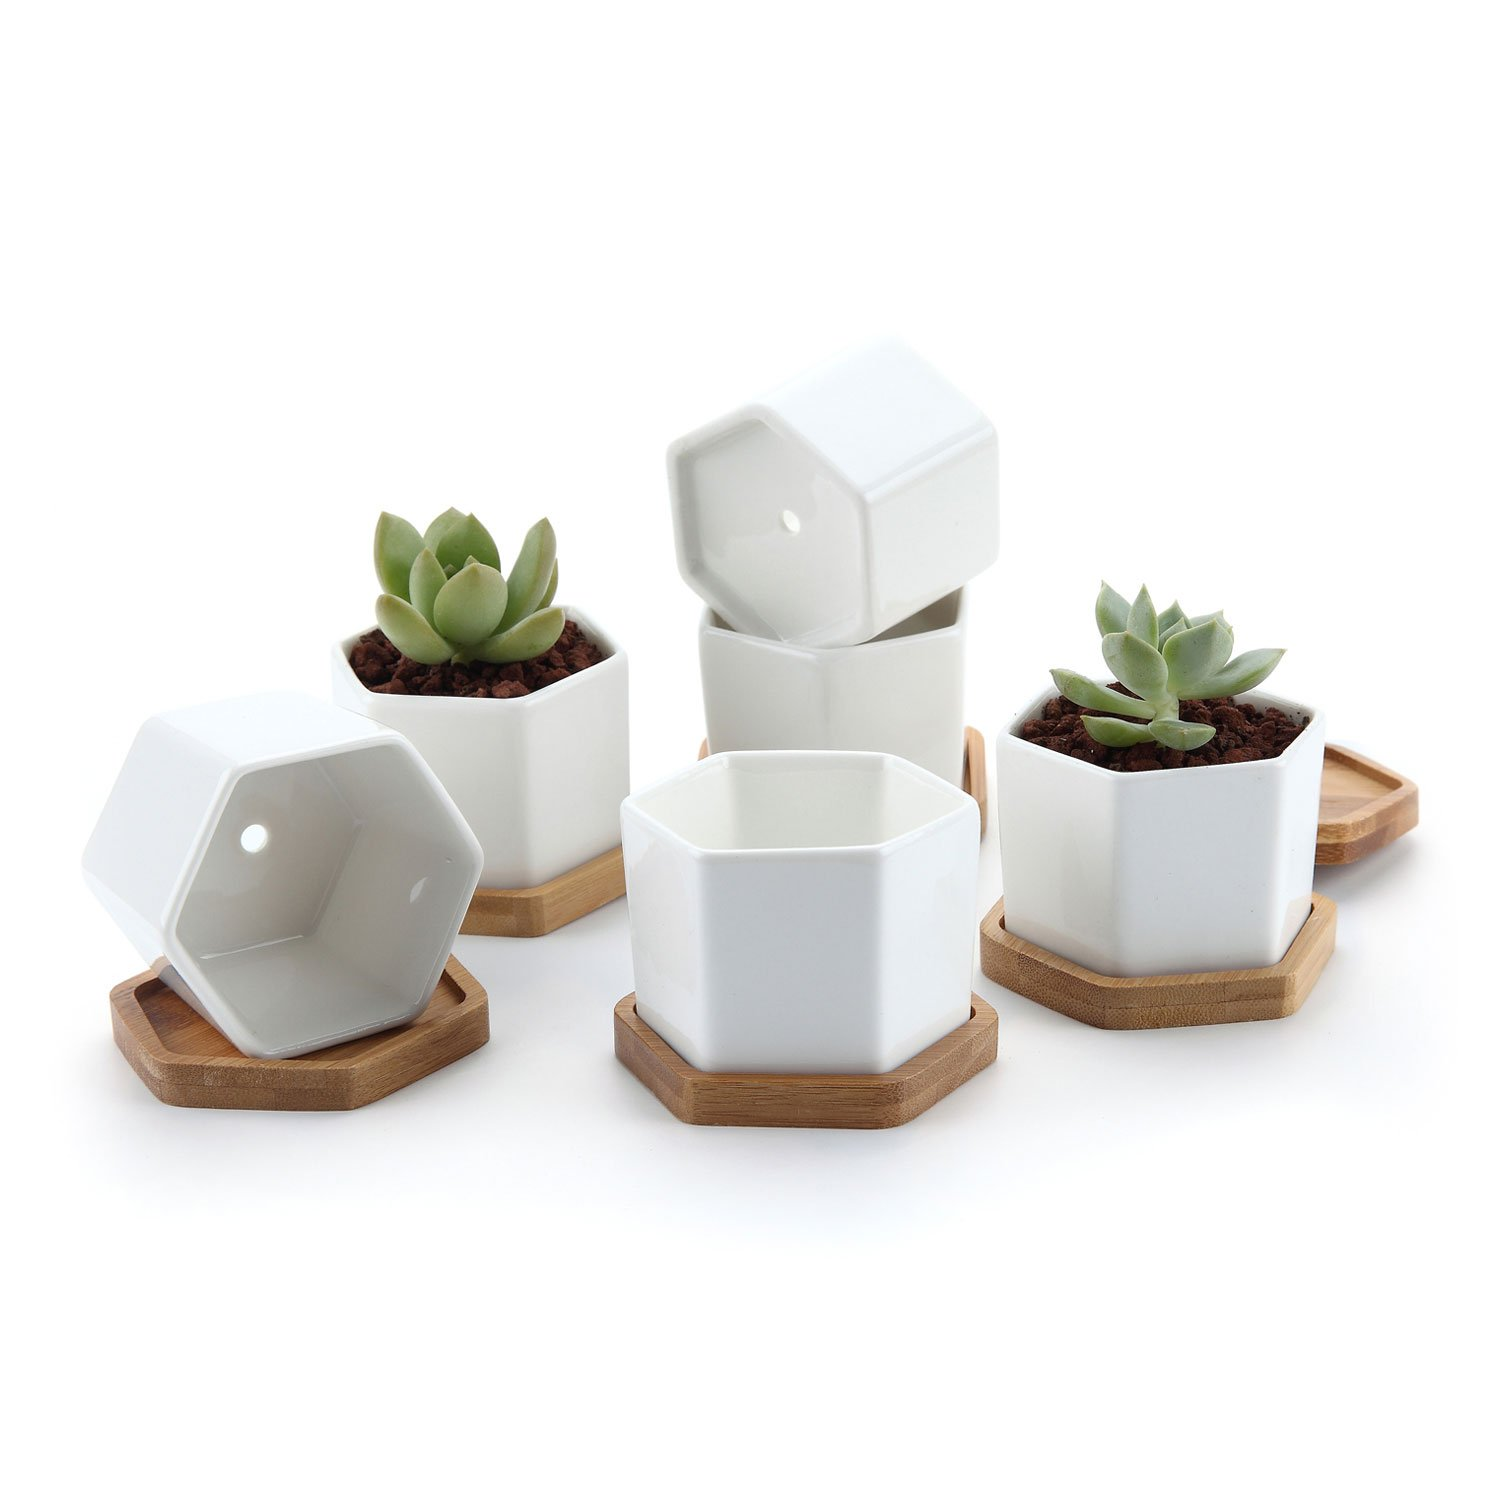 T4U 2.75'' White Ceramic Hexagon Succulent Cactus Planter Pots with FREE Bamboo Tray for Home Decoration 1 Pack of 6 by T4U